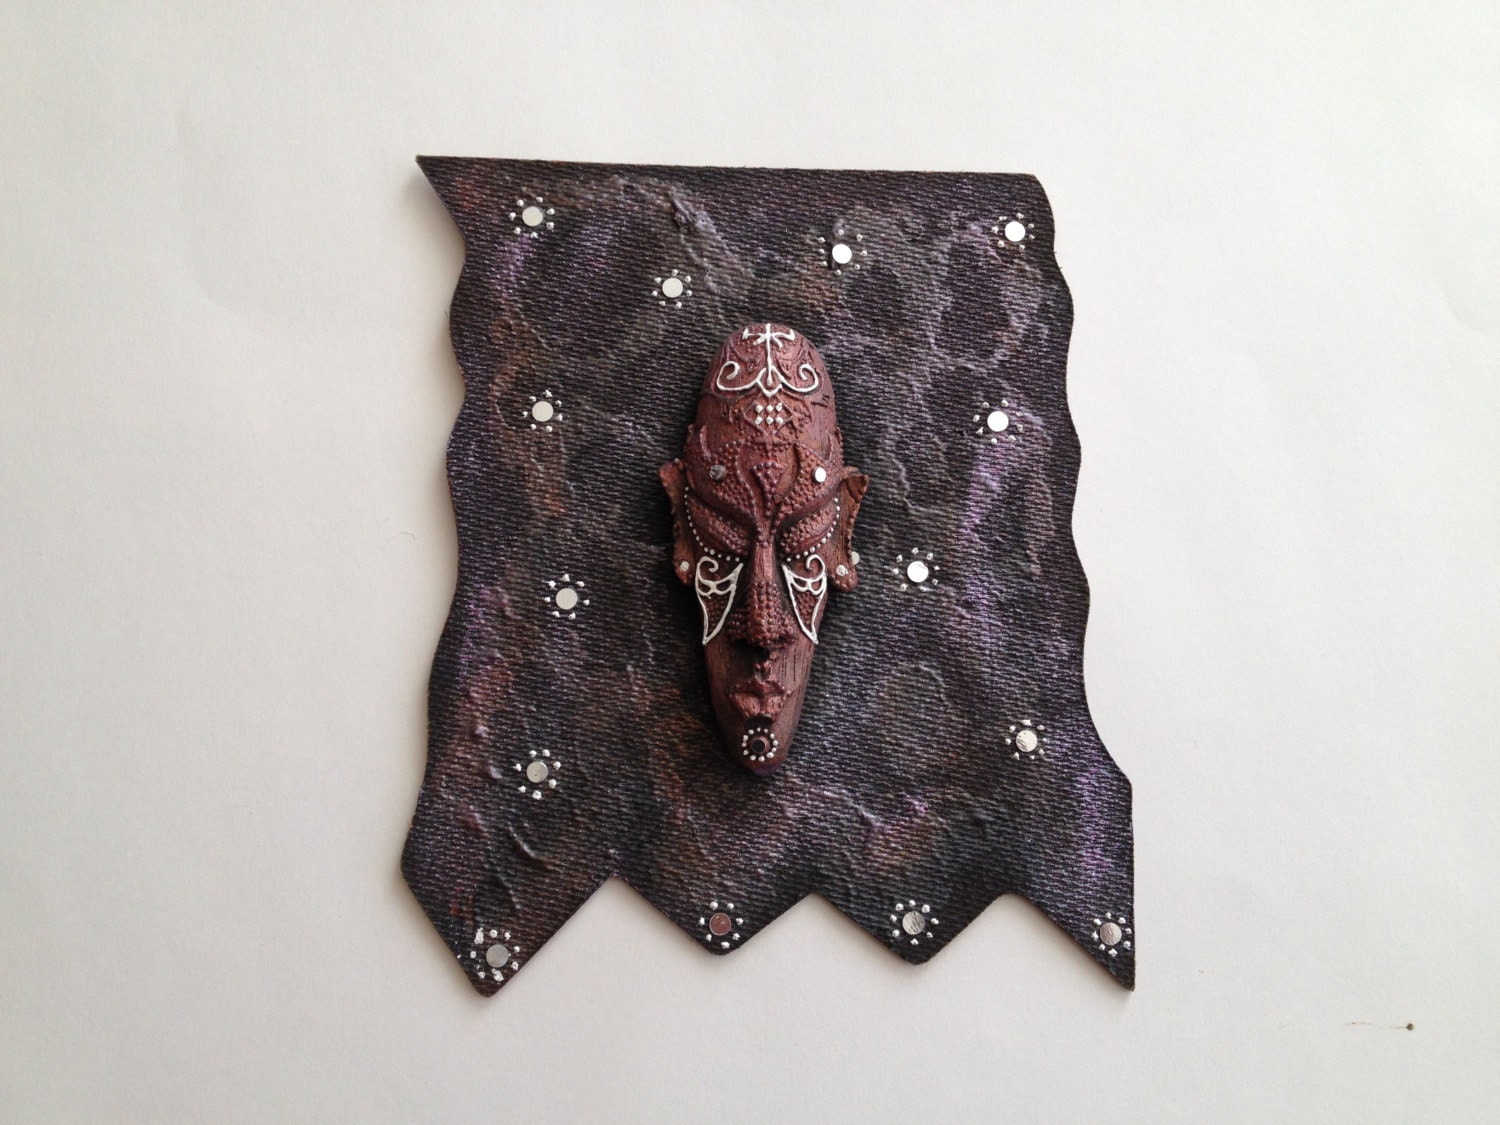 Multi media Mask- 3d Mask- decorated with acrylic paints